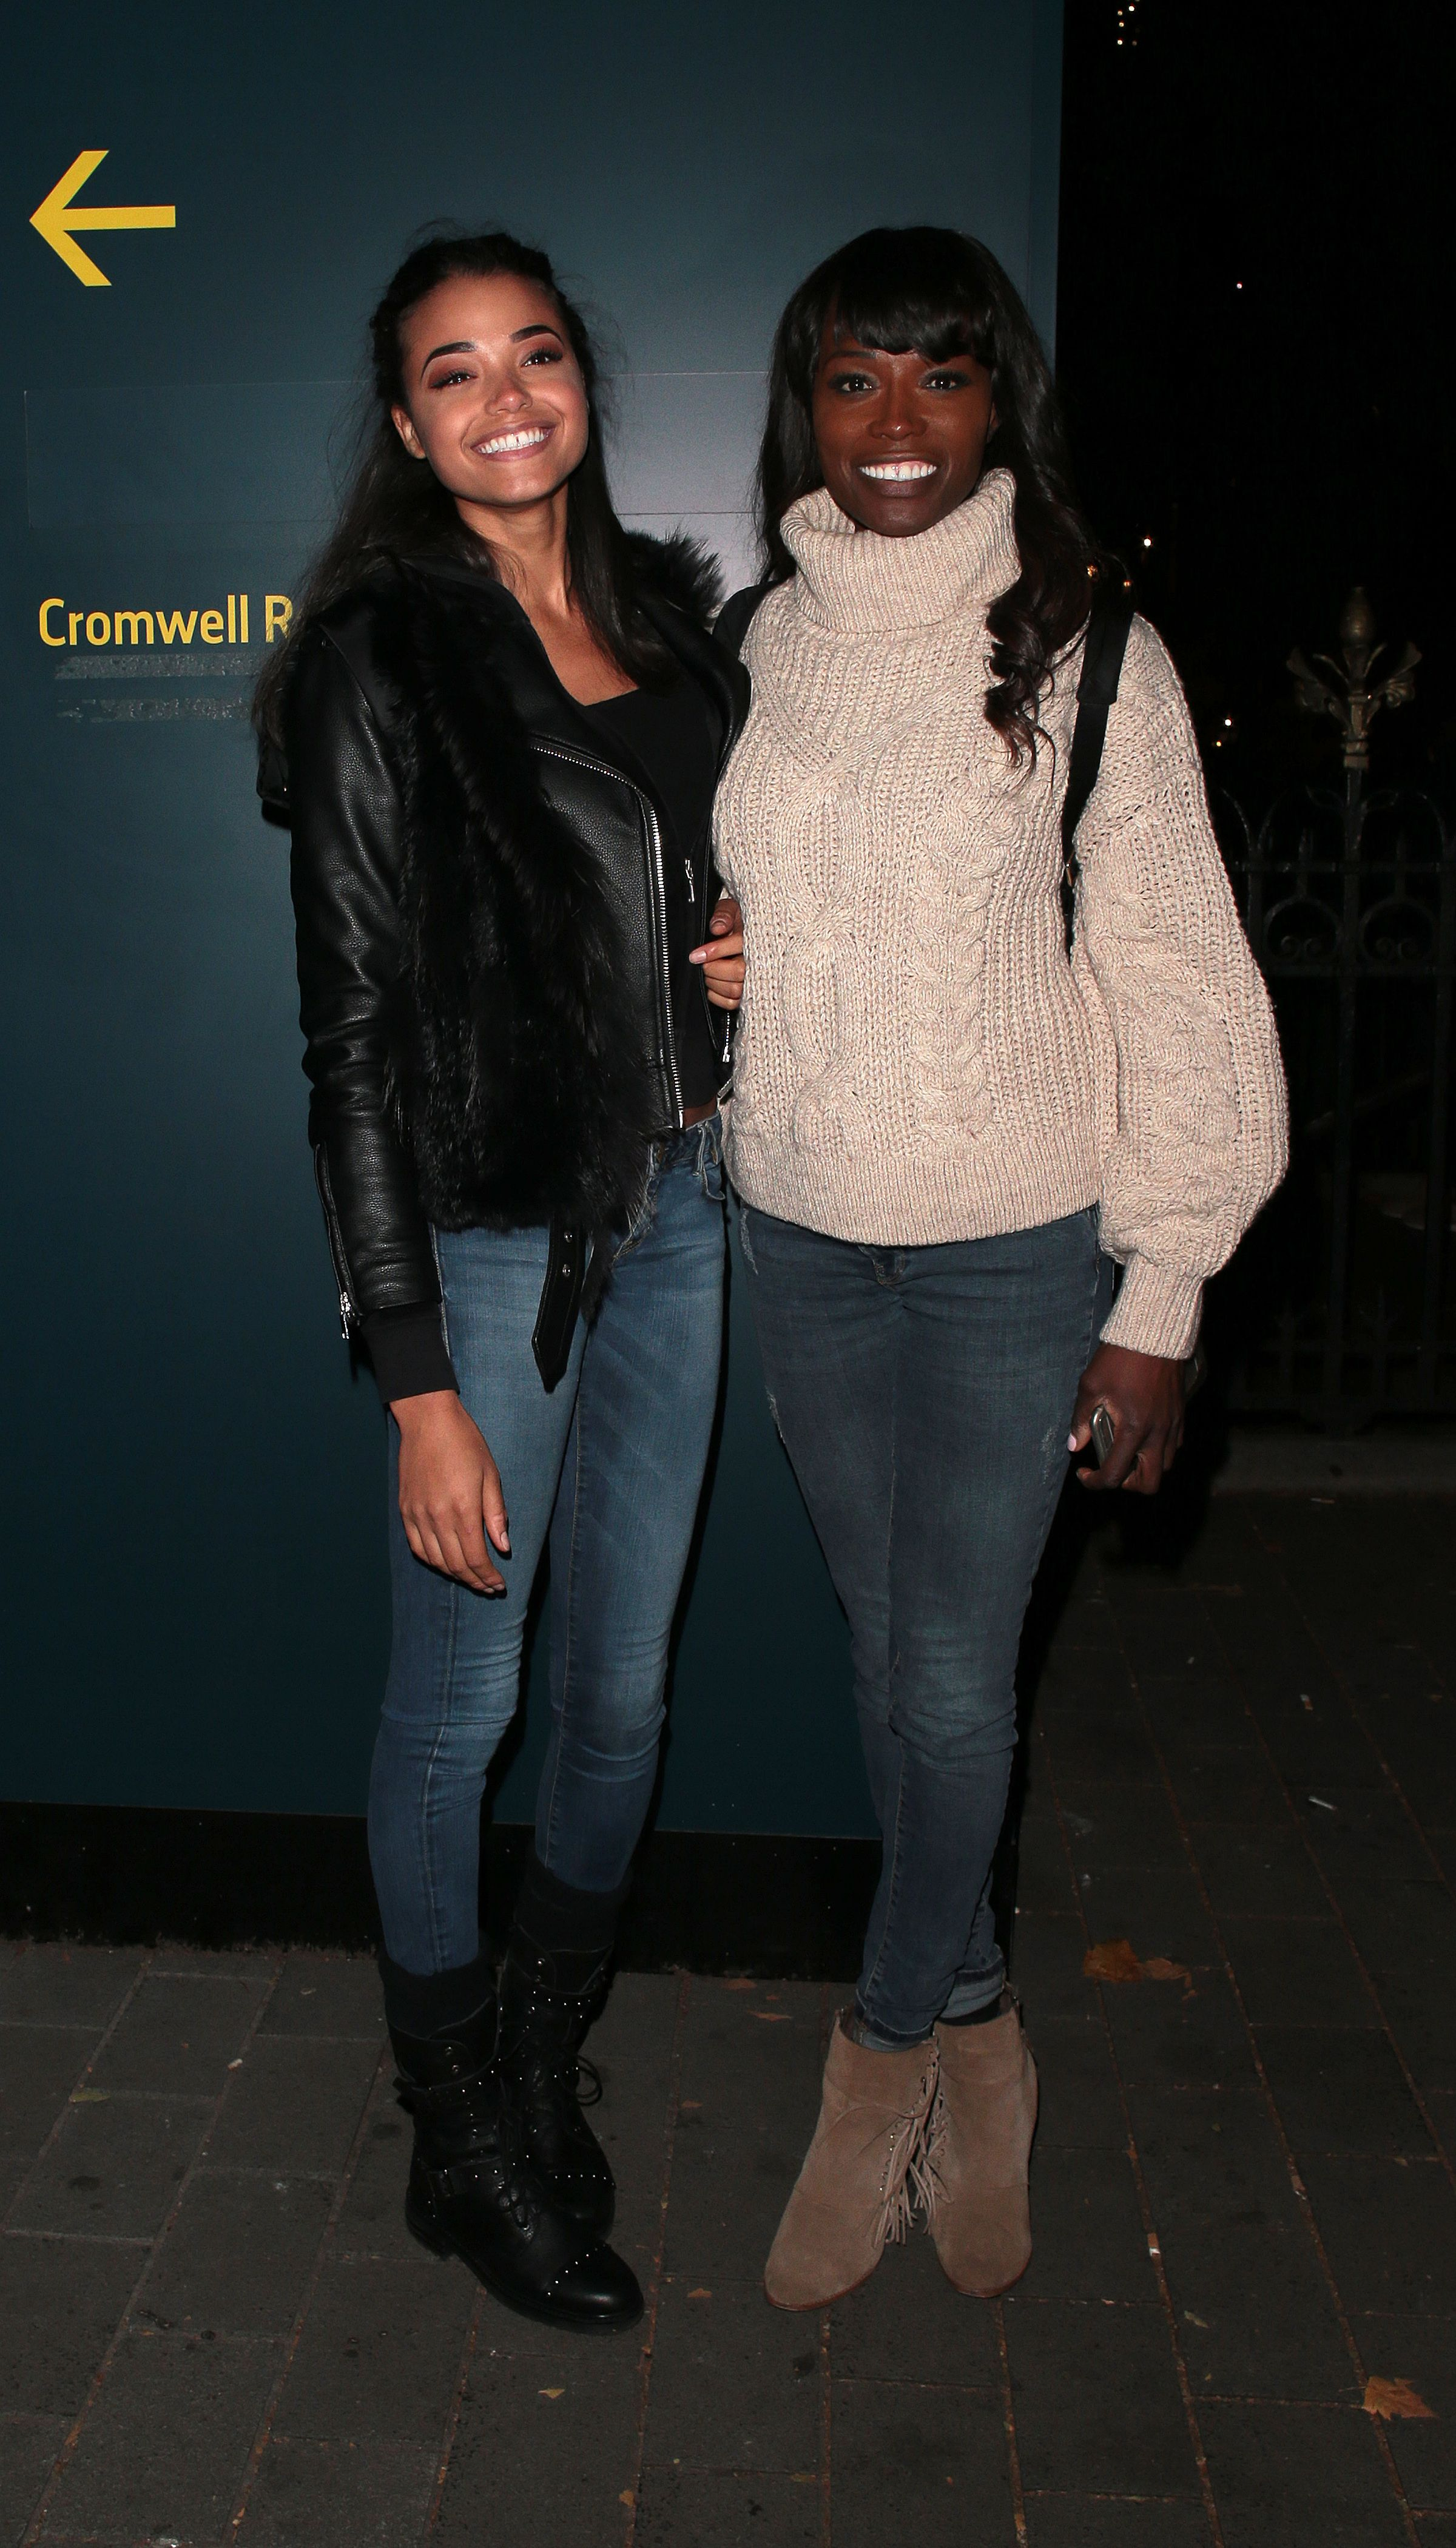 Lorraine Pascale and daughter Ella Balinska at the Natural History Museum Ice Rink in 2017 in London, England | Source: Getty Images